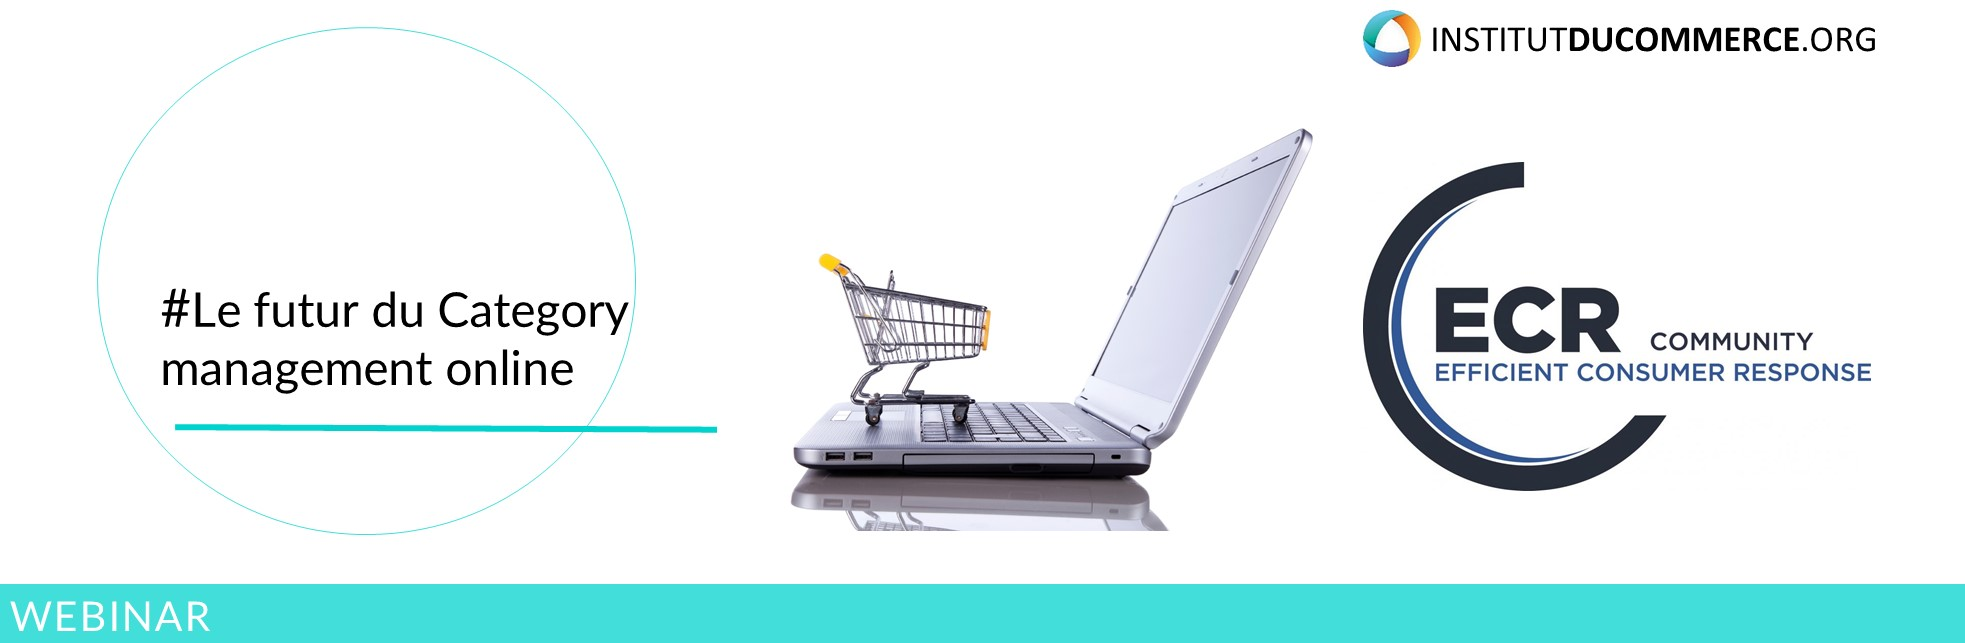 Webinar : le futur du category management online